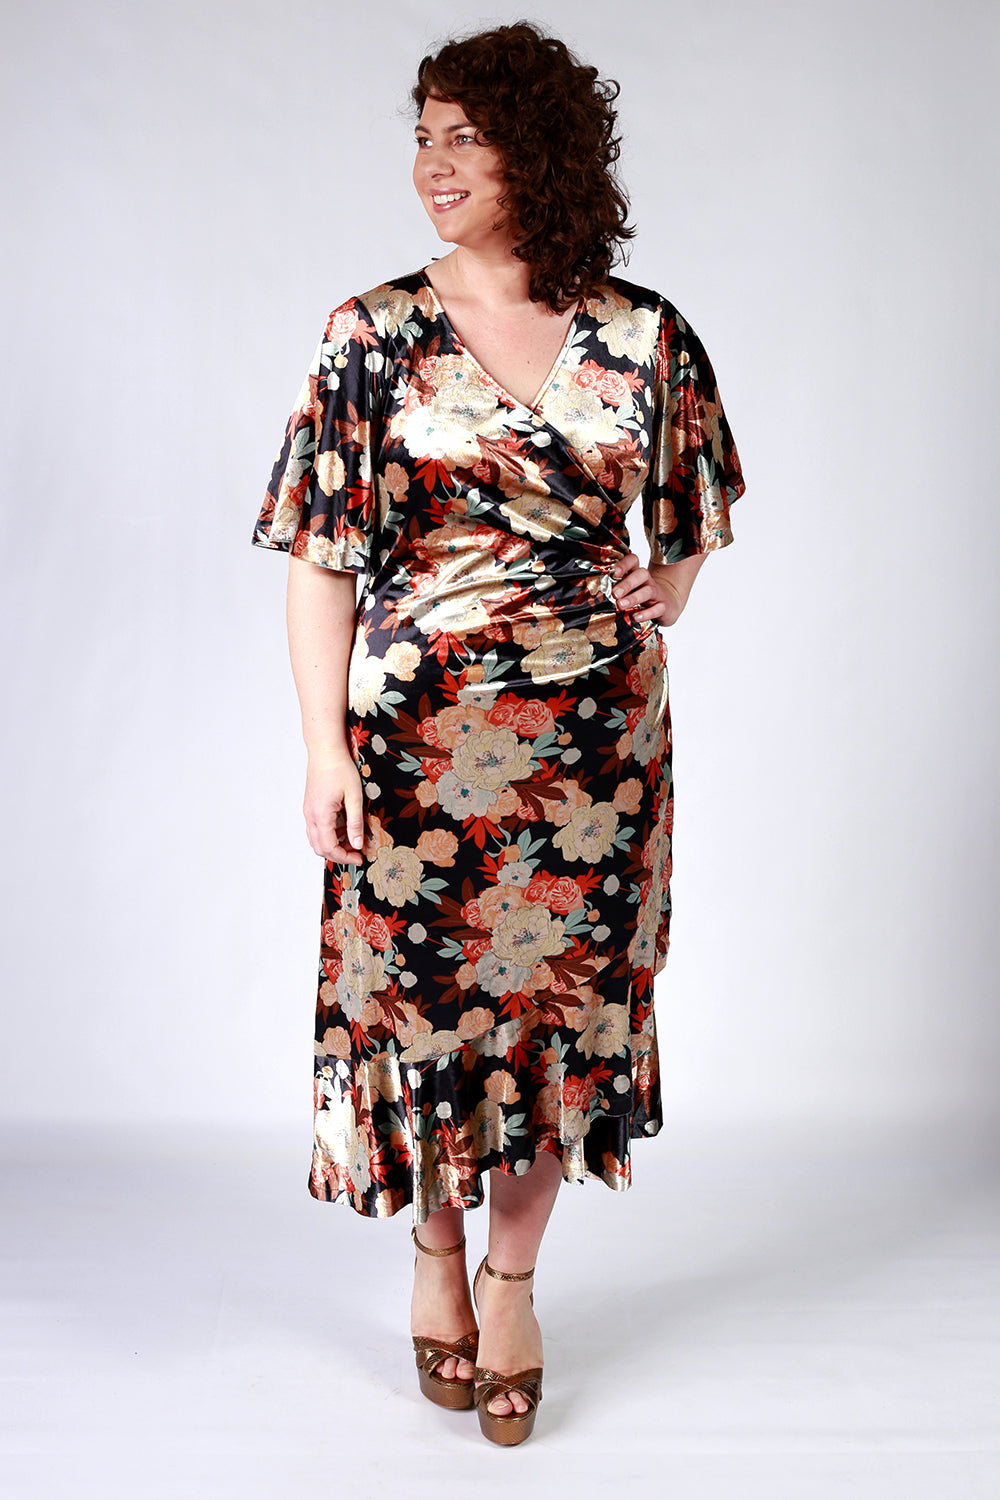 Violet's My Name Dress | Gypsy Fare Collection | Annah Stretton AW20 | Annah Stretton Dress | Velvet Dress | Midi Length Dresses NZ | Designer Fashion NZ | Floral Dresses NZ | Velvet Dress NZ |